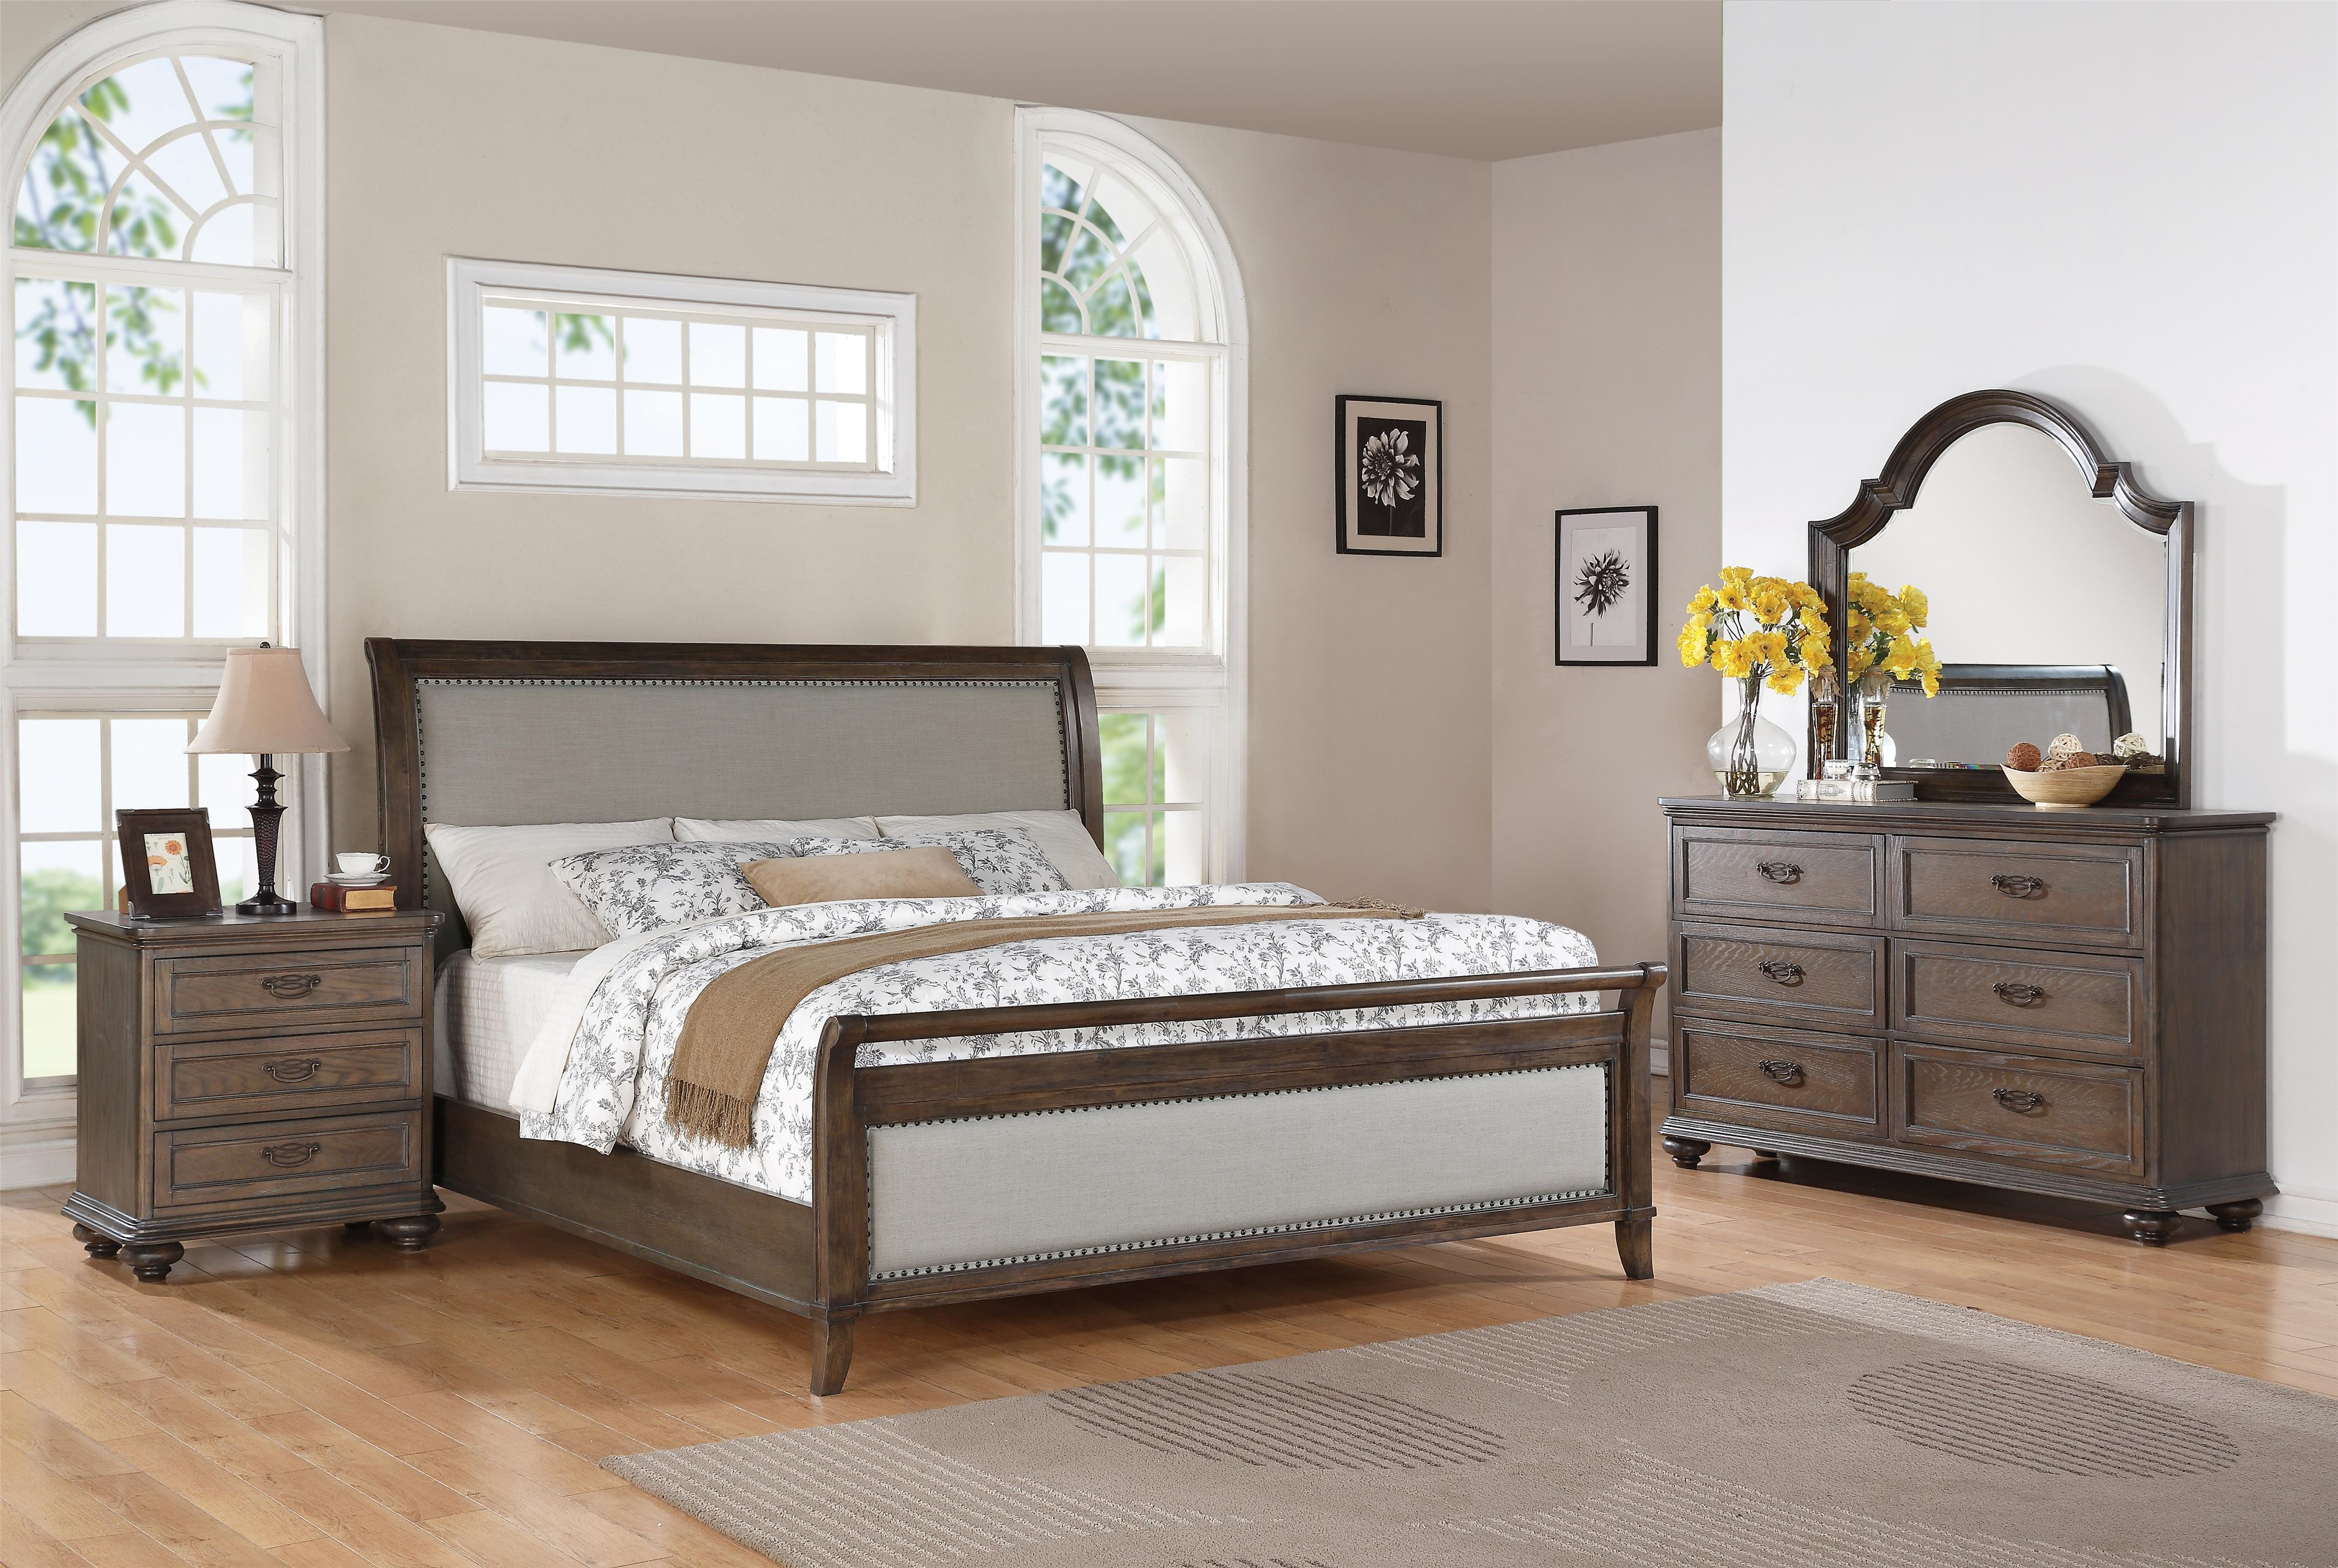 Superieur Queen Sleigh Upholstered Bed